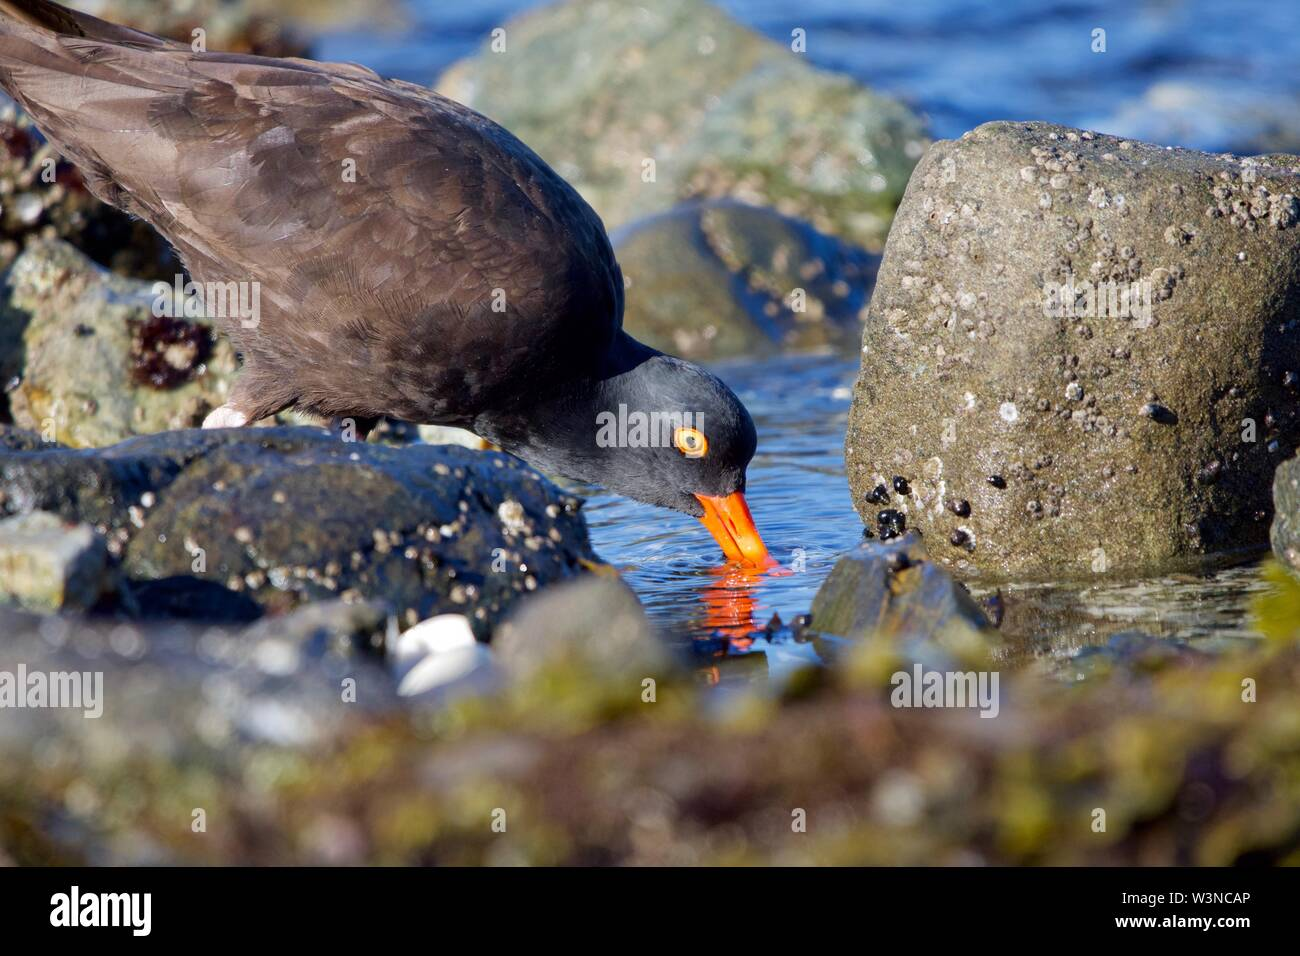 Black oystercatcher probes for shellfish in a tide pool near Clover Point, Vancouver Island, British Columbia - Stock Image